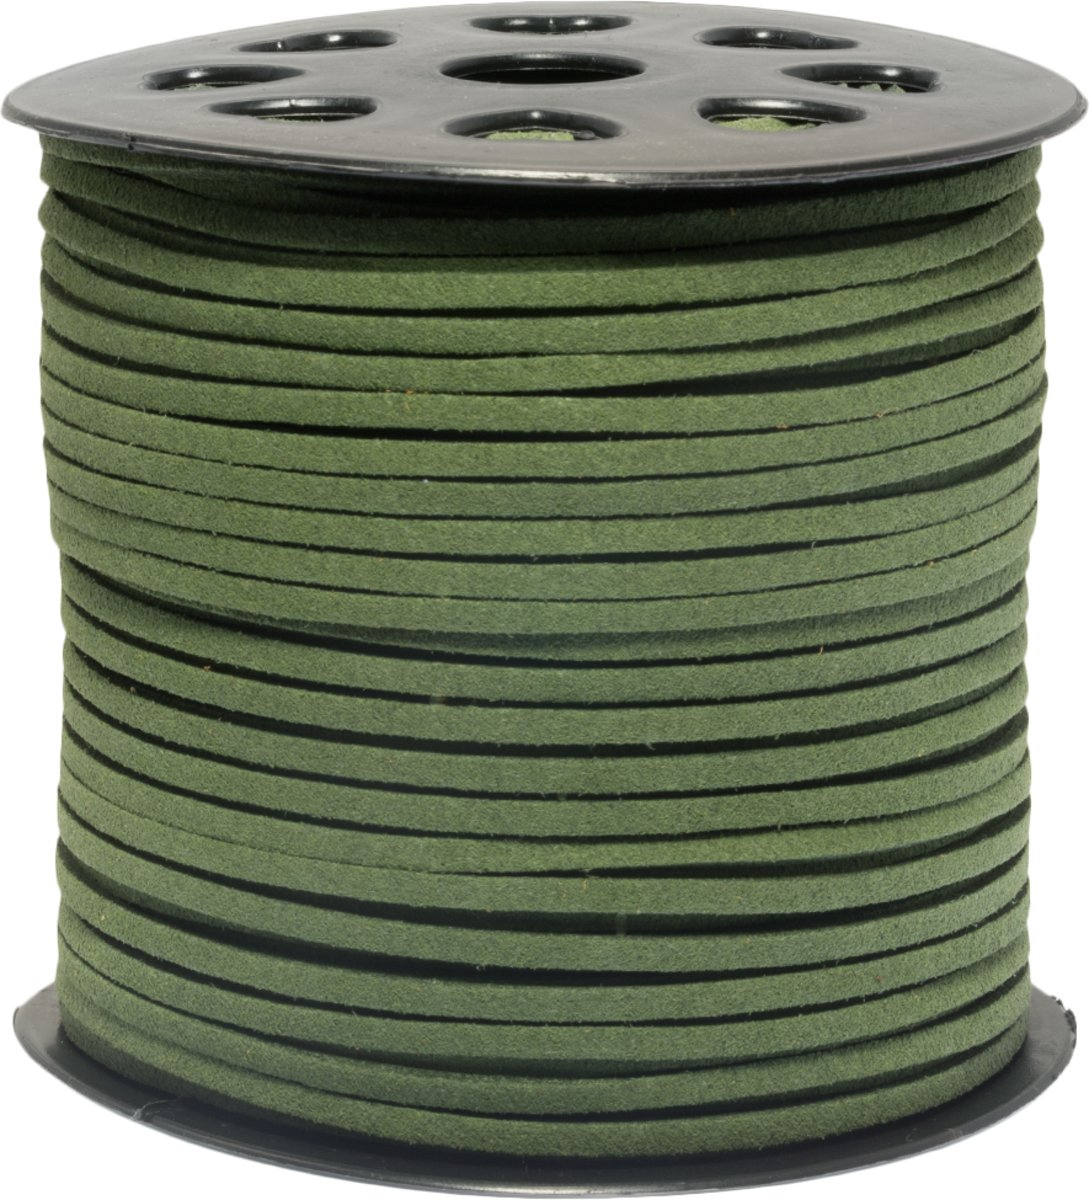 Faux Suede Veter (3 mm) Cactus Green (91 Meter)